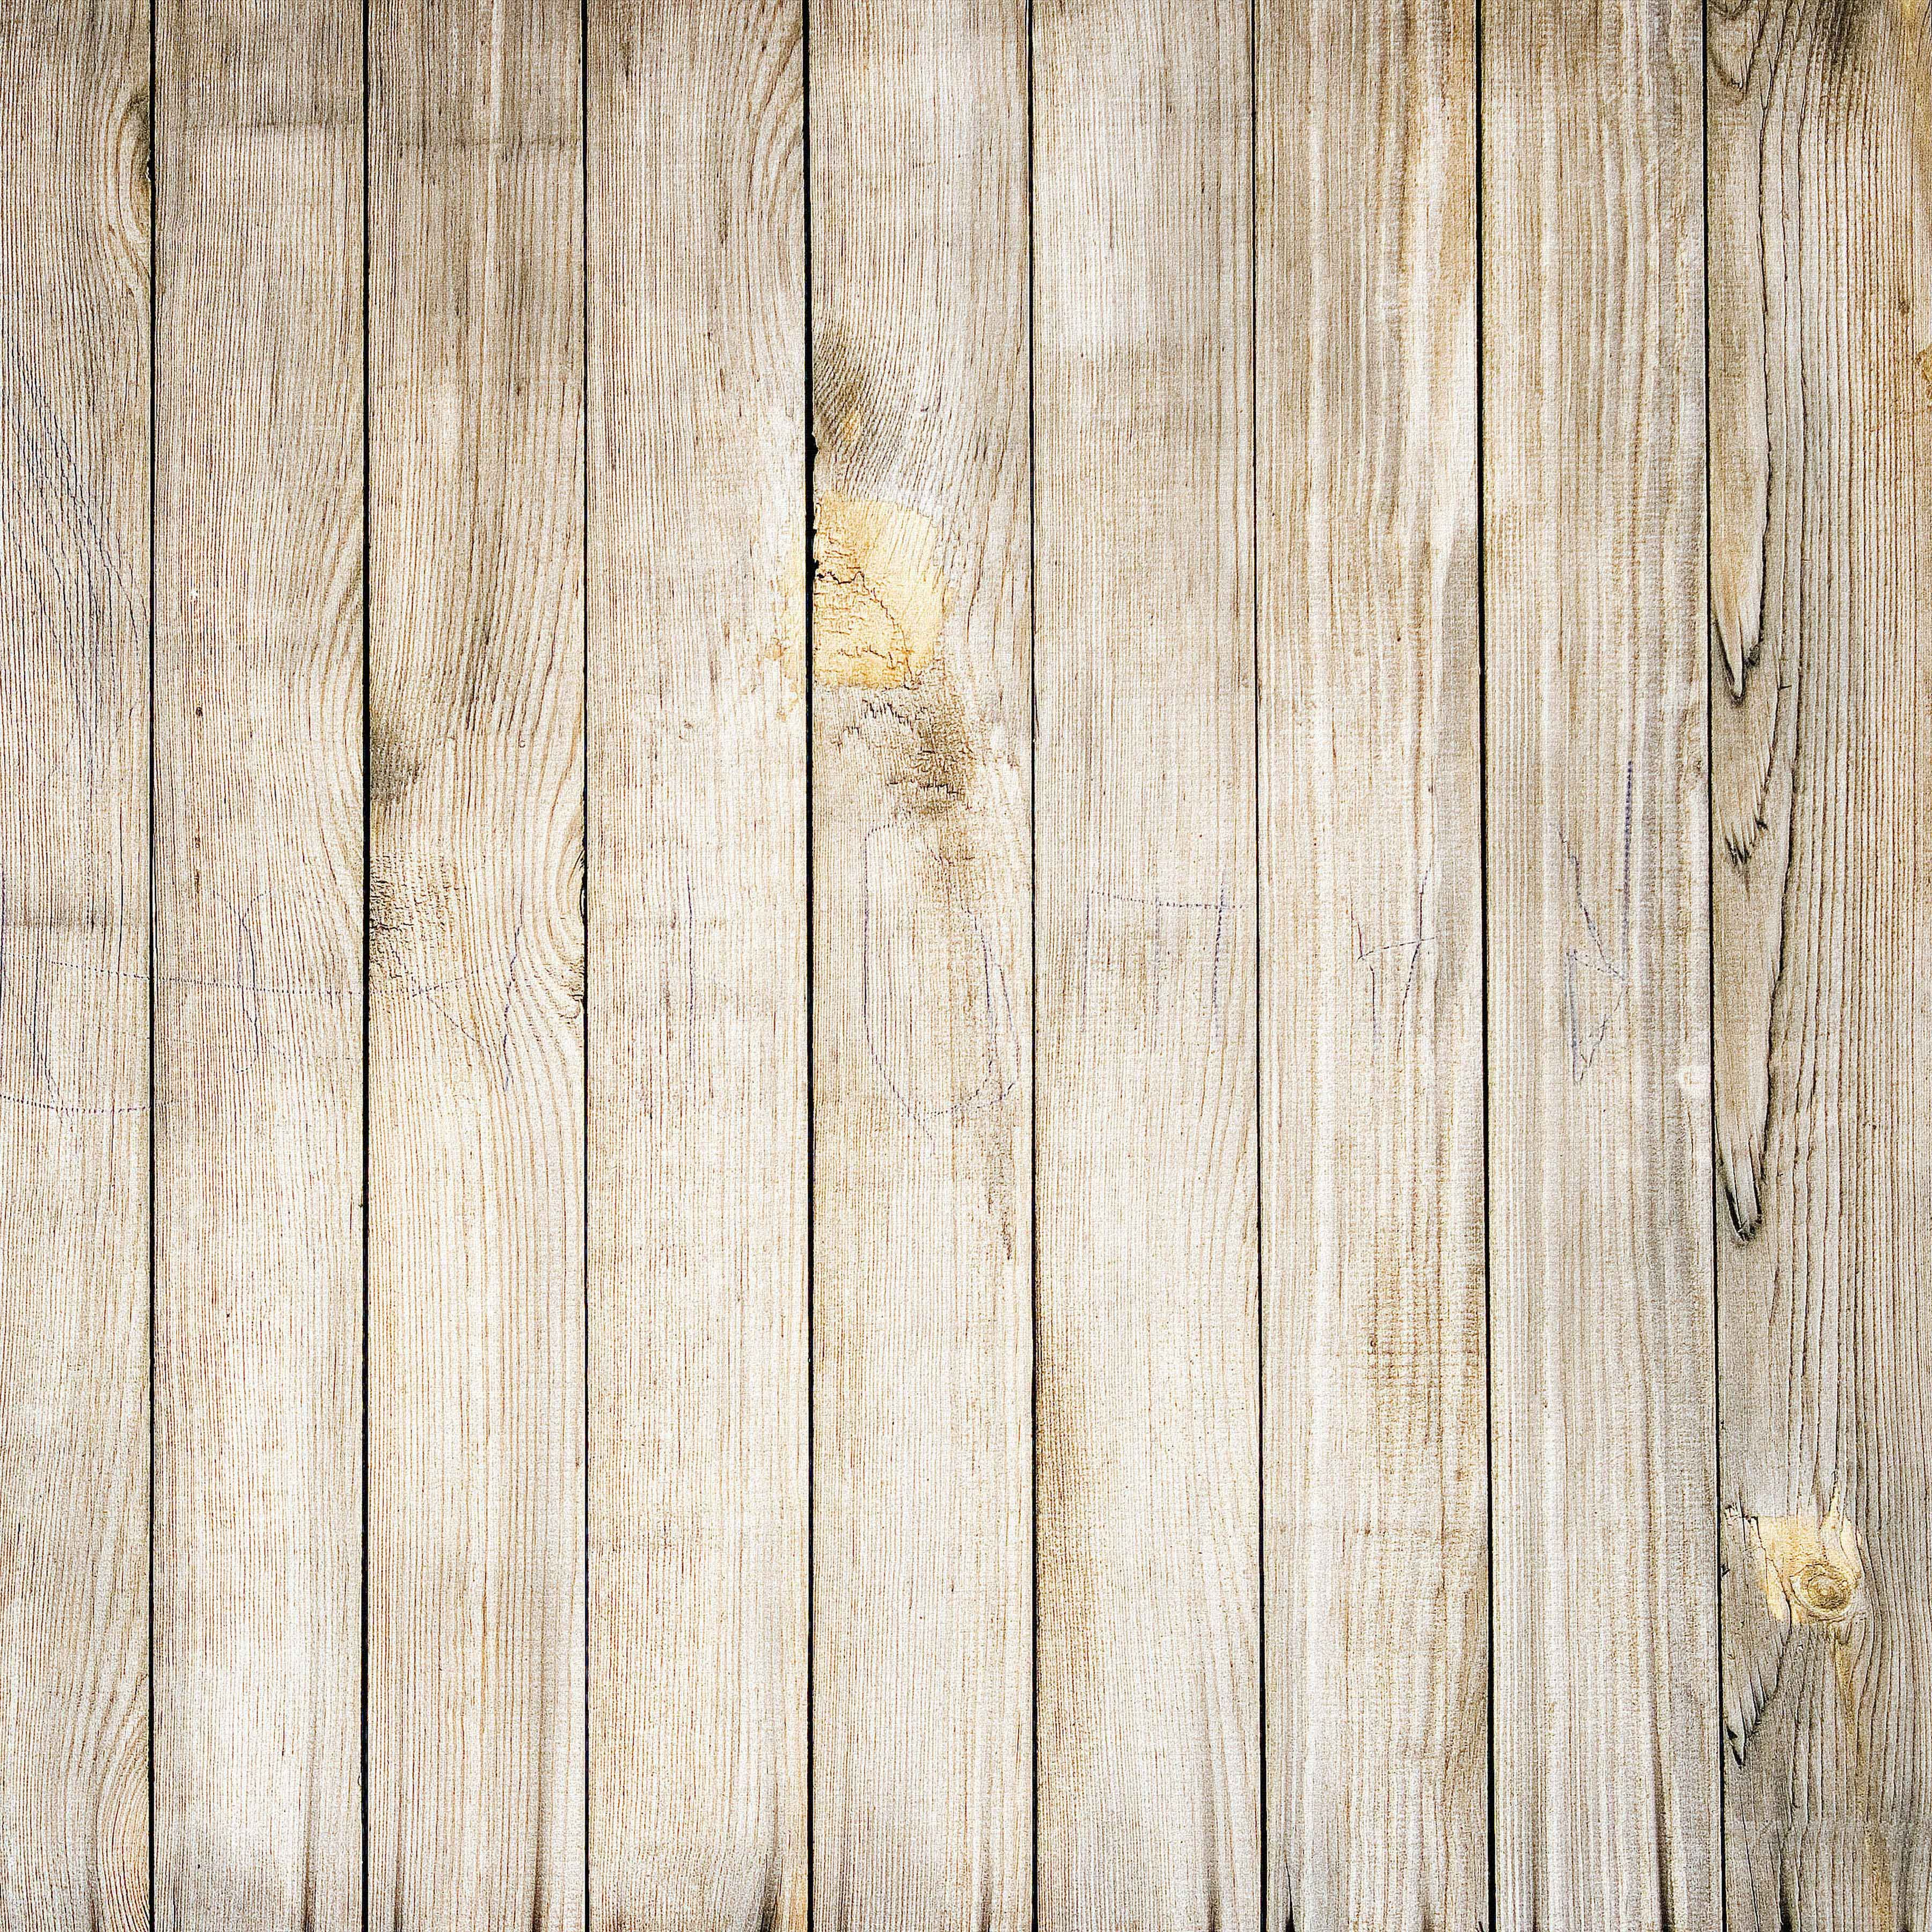 Wood Backgrounds Background paper Wood scrapbook 3600x3600